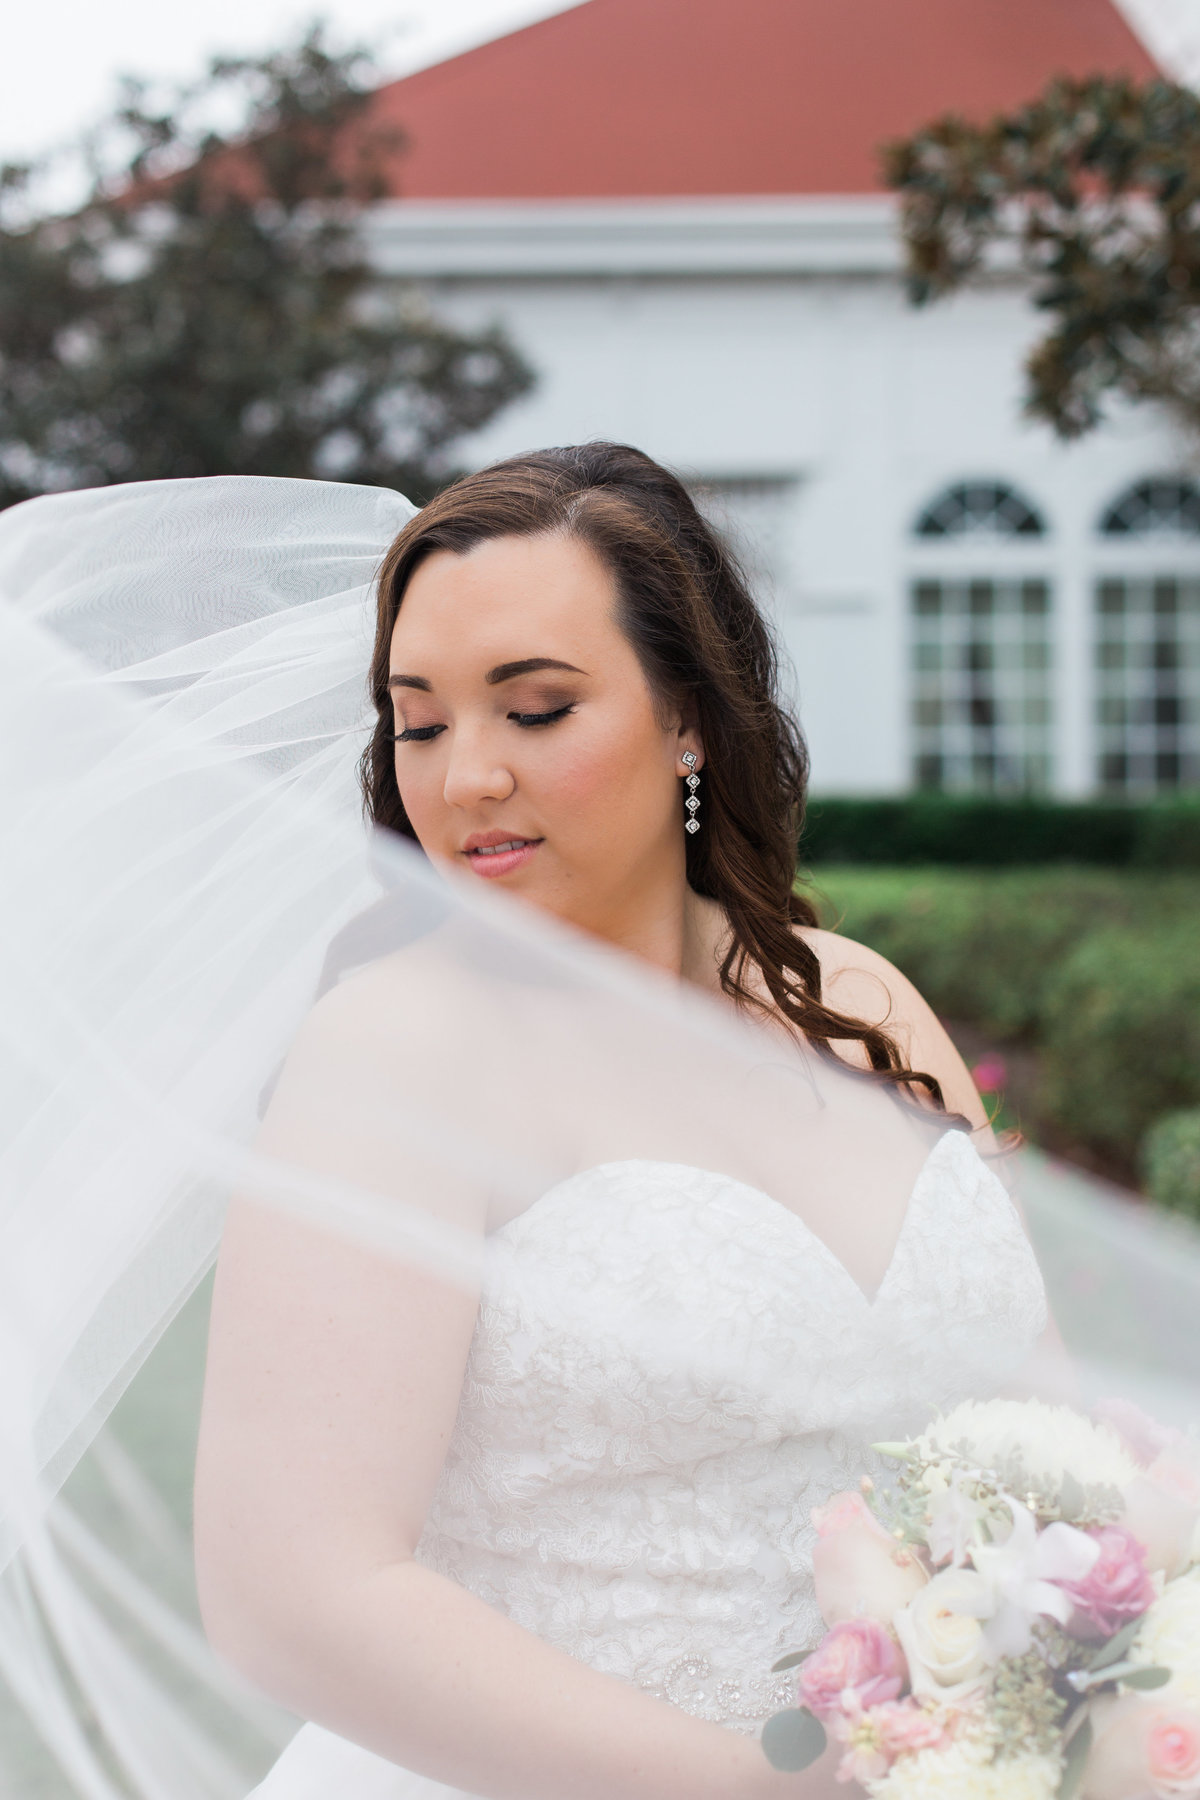 Jess Collins Photography Our Disney Wedding 2017 (137 of 668)